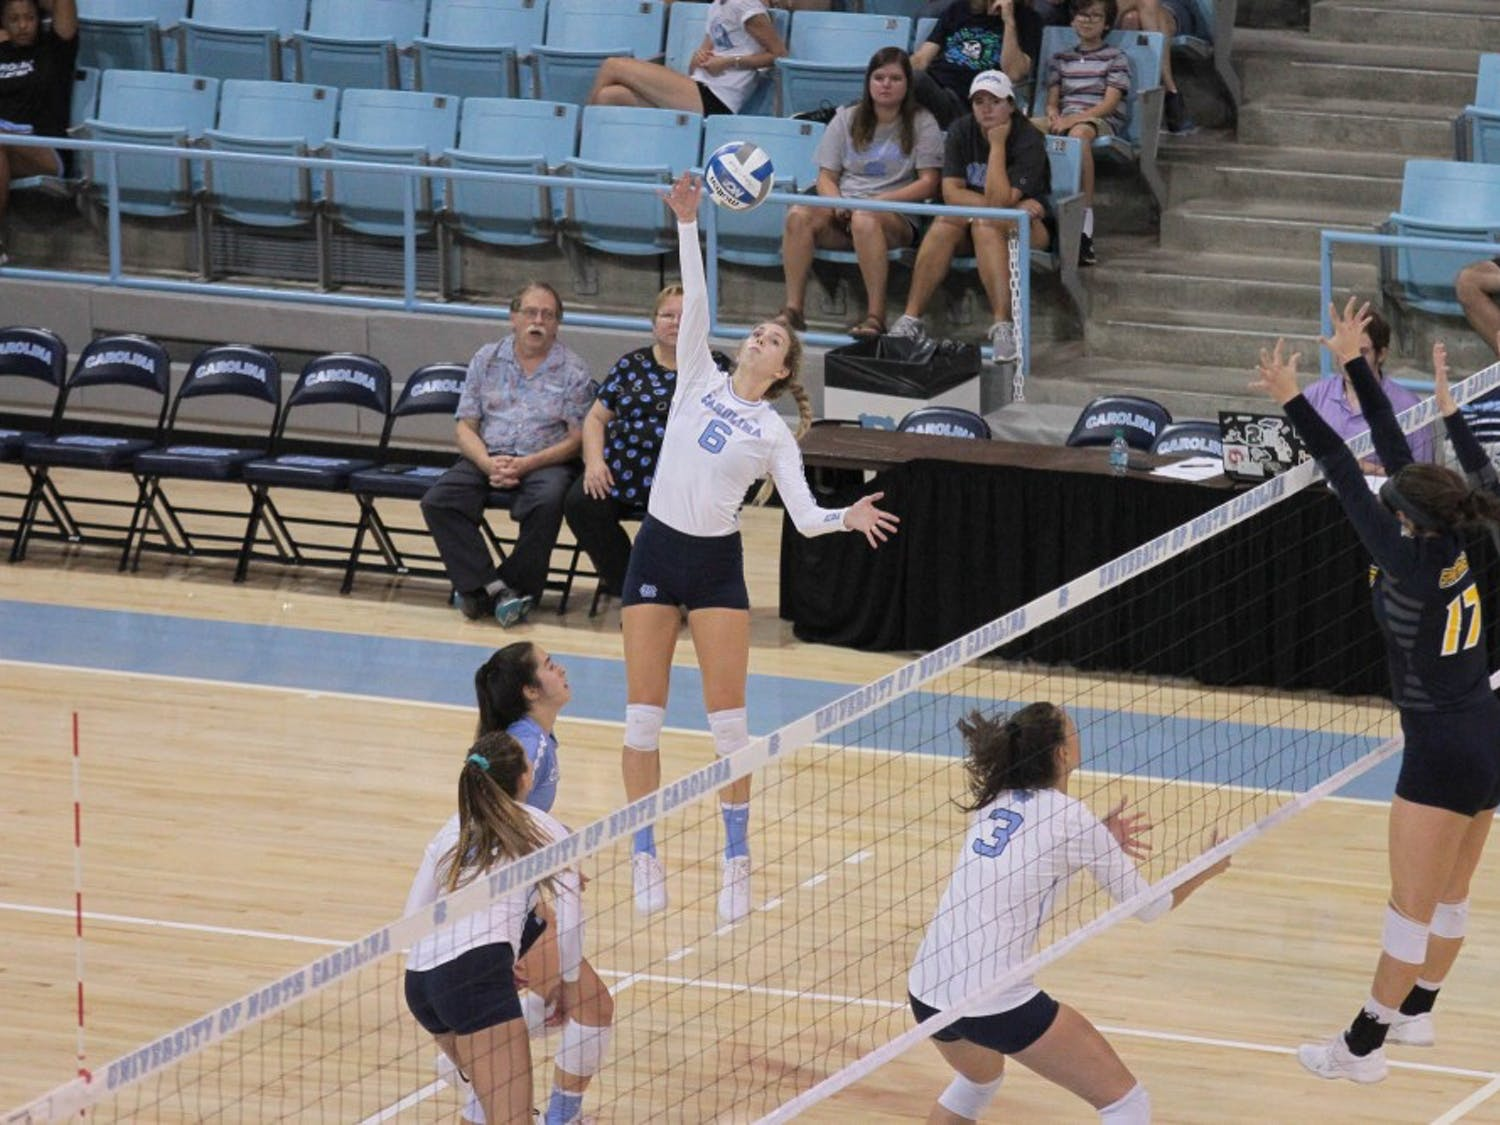 UNC outside hitter Skylar Wine (6) spikes against UNC-Greensboro Friday, Aug. 31 in Carmichael Arena.